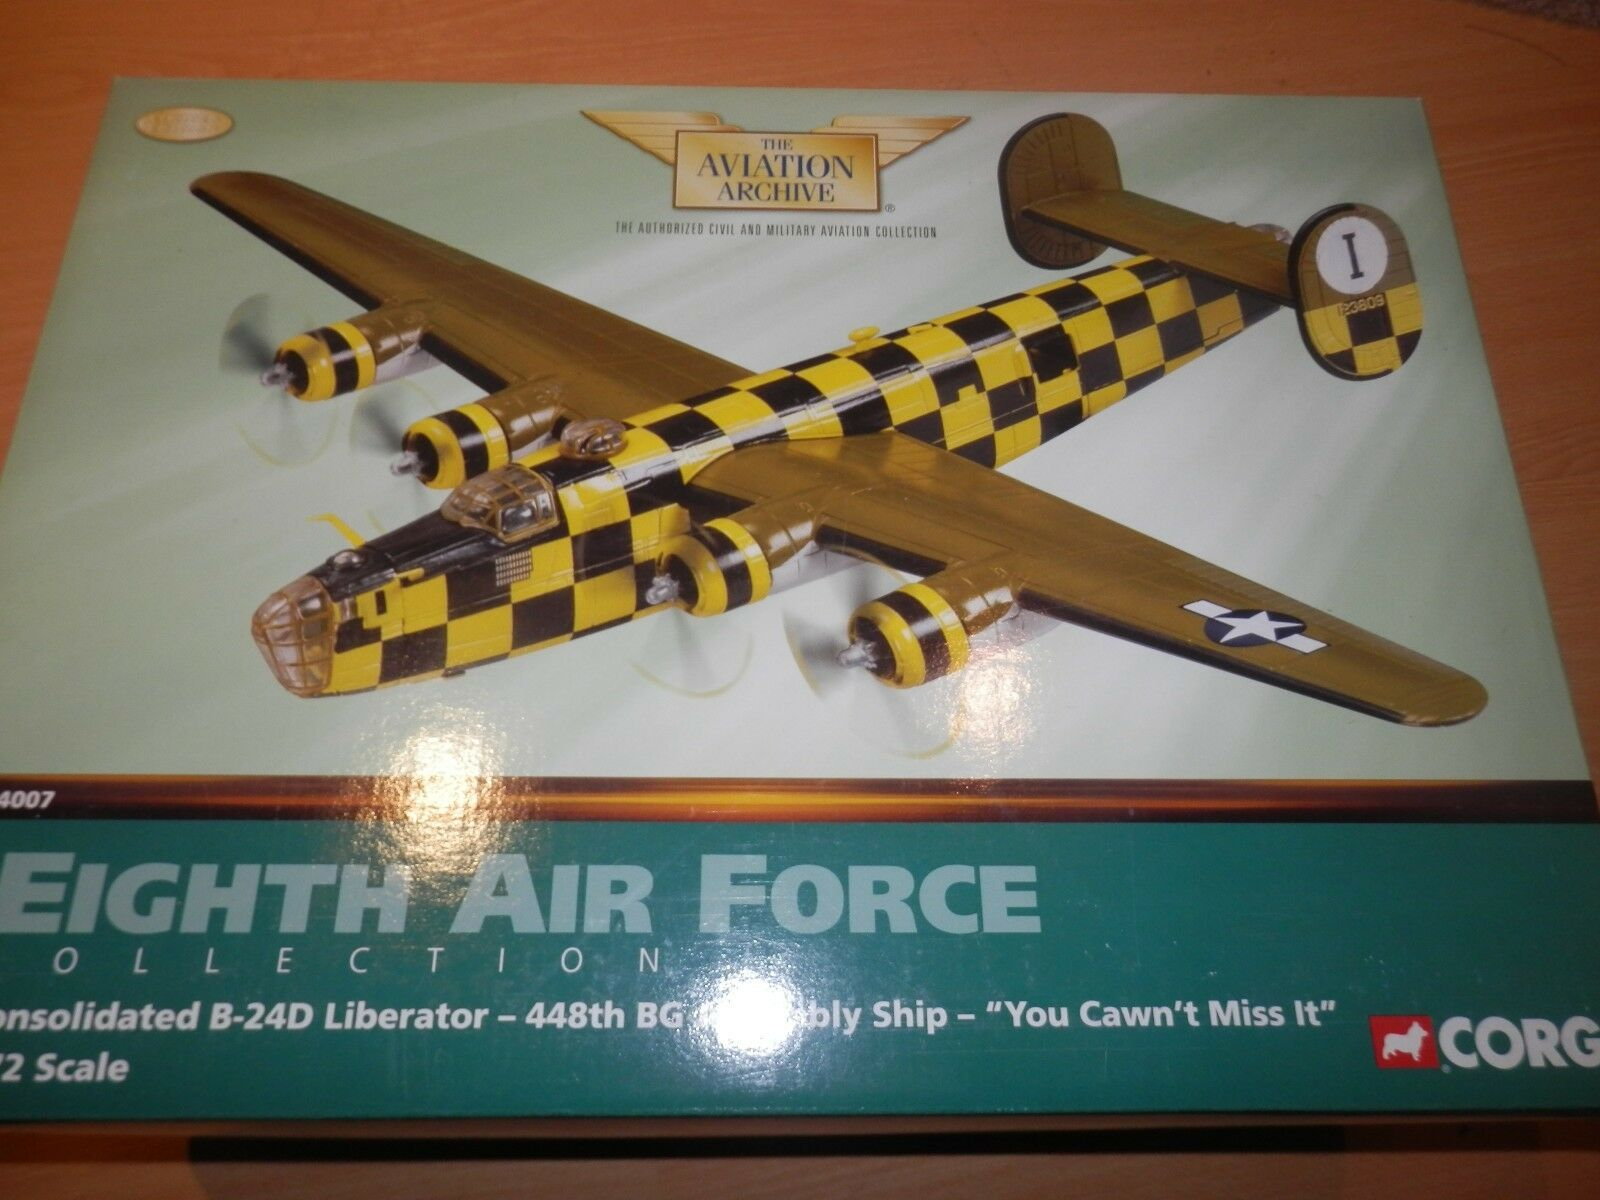 CORGI AVIAZIONE 1 72 US b24d LIBERATOR 448th BG assieme NAVE si CANT Miss IT